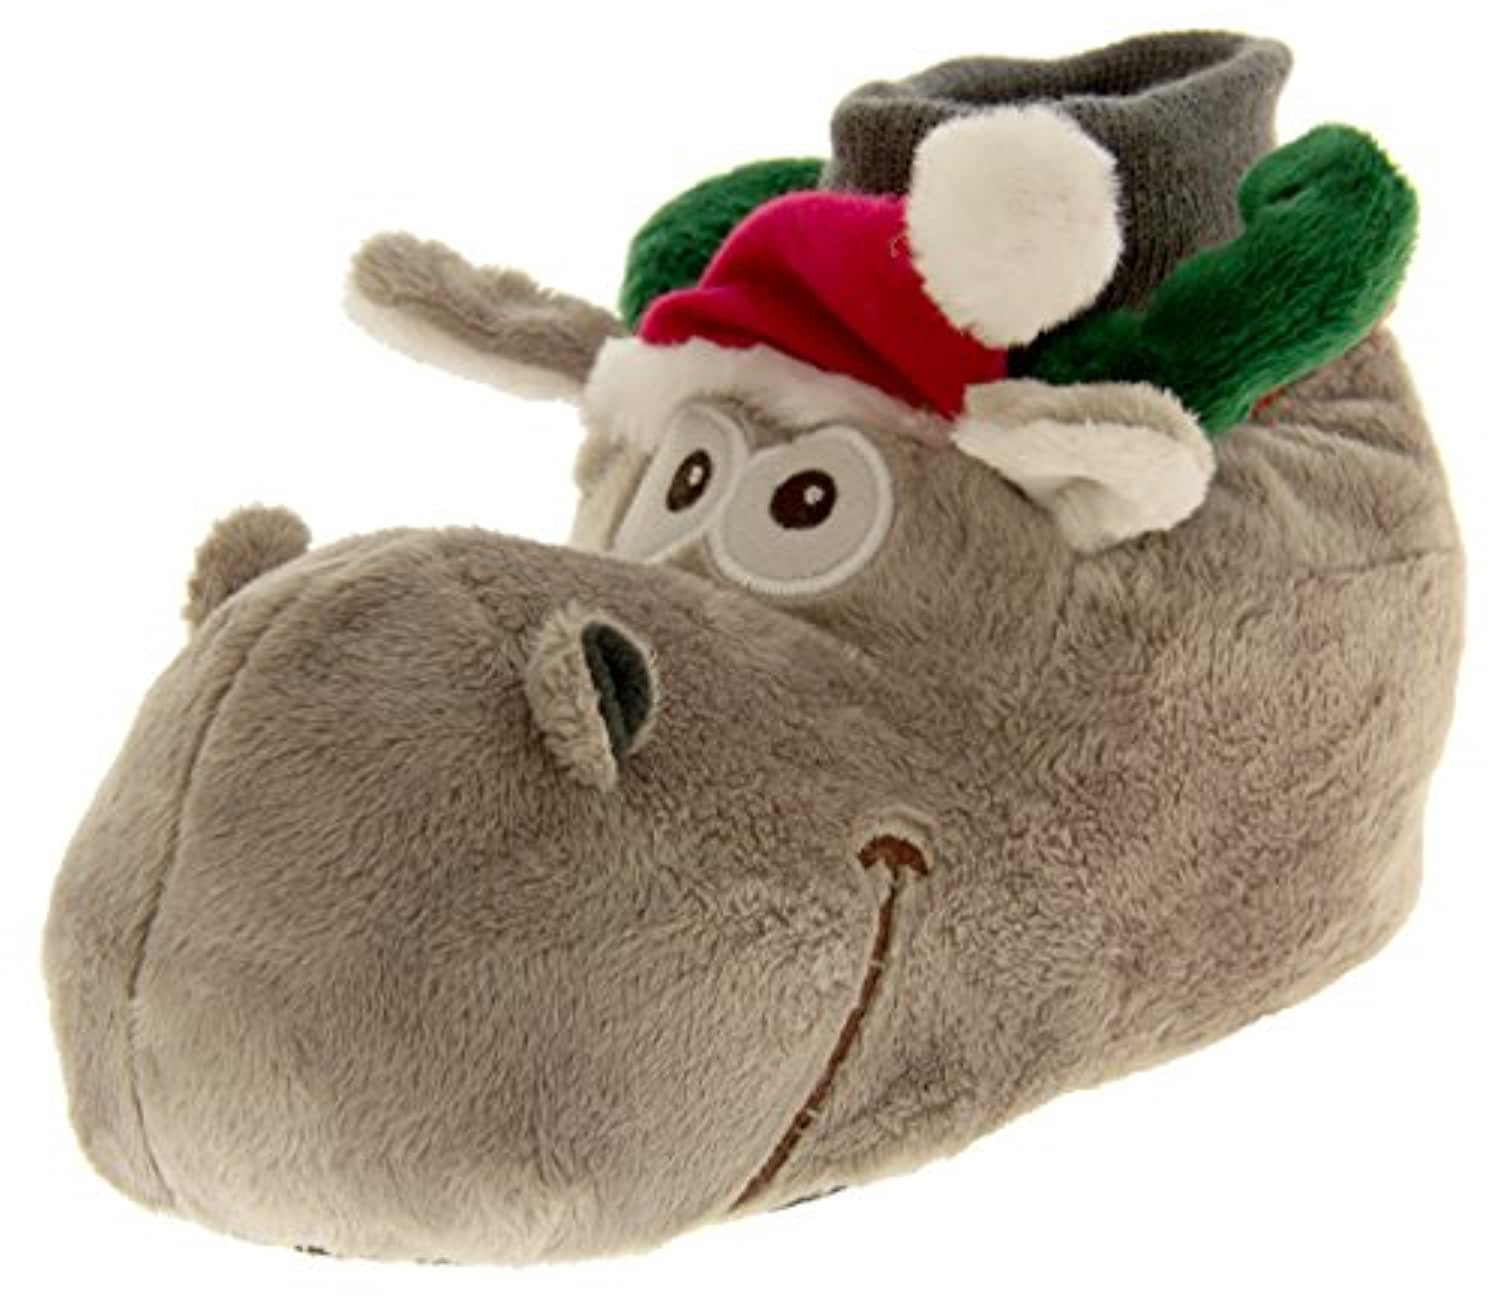 De Fonseca Boys Girls Auguri Grey Reindeer Novelty Character Slippers 4-5 UK (20-22 EUR) Toddler